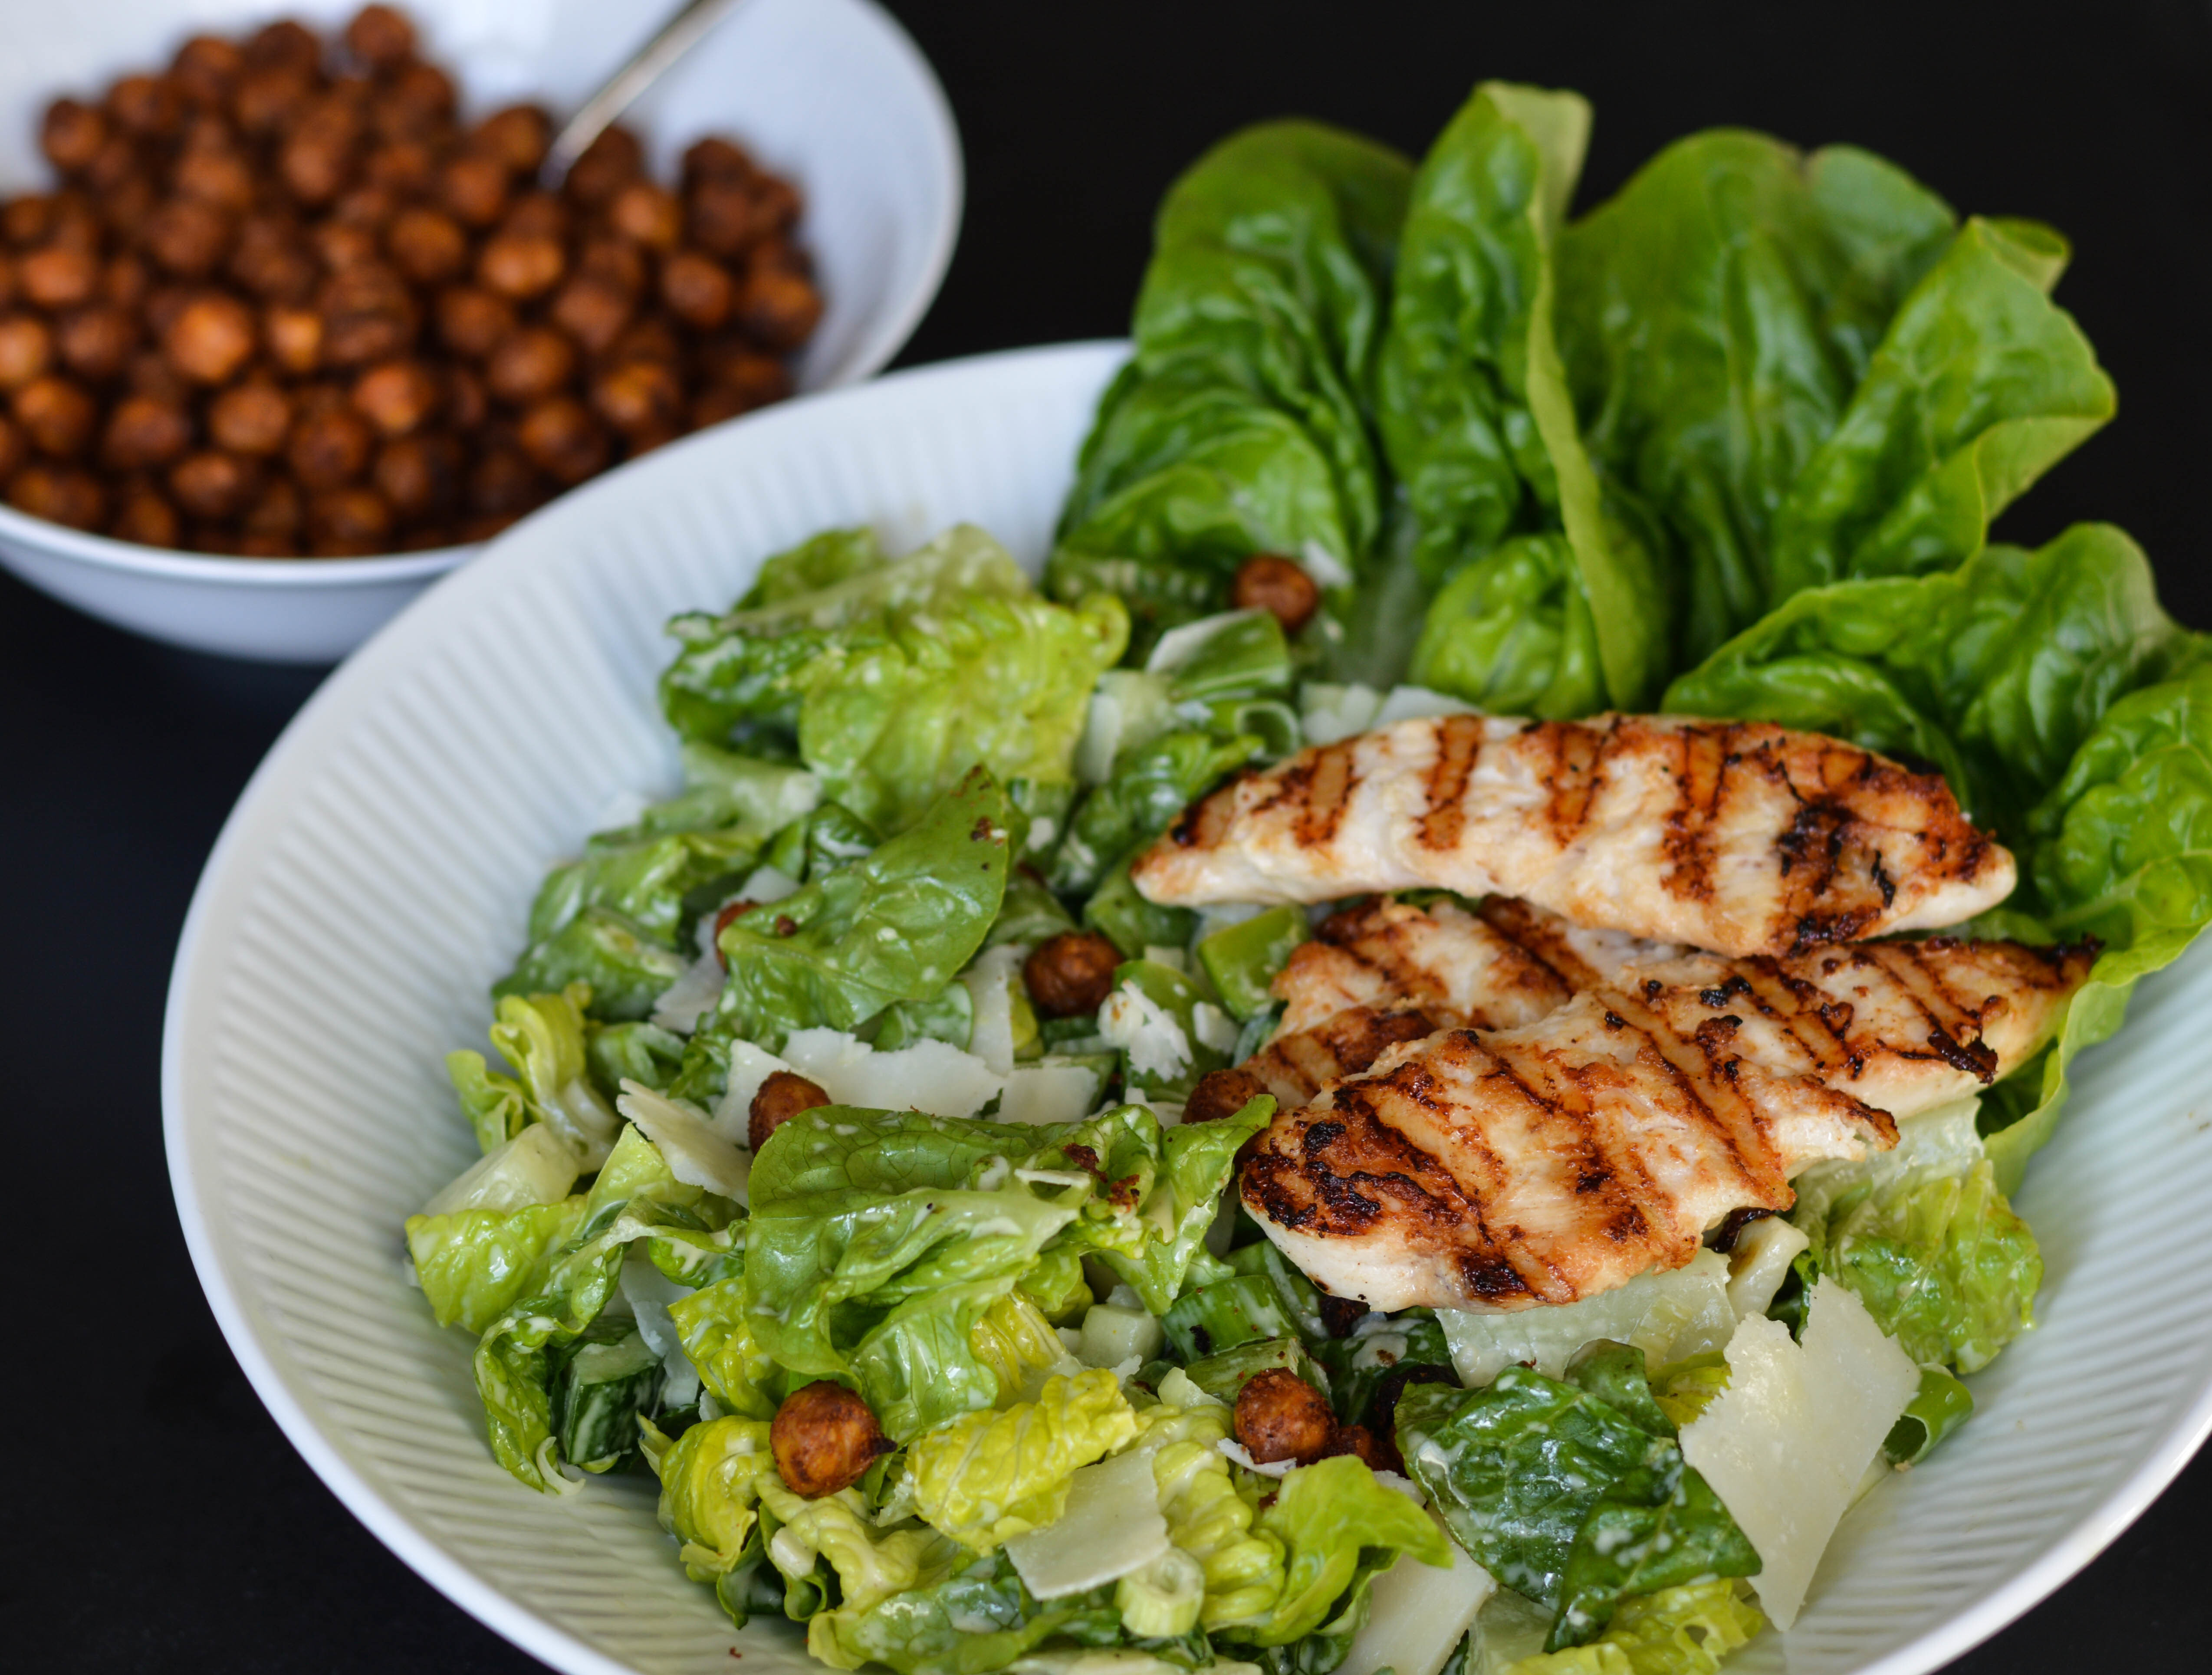 Caesar Salad with Homemade Dressing and Crispy Chickpeas